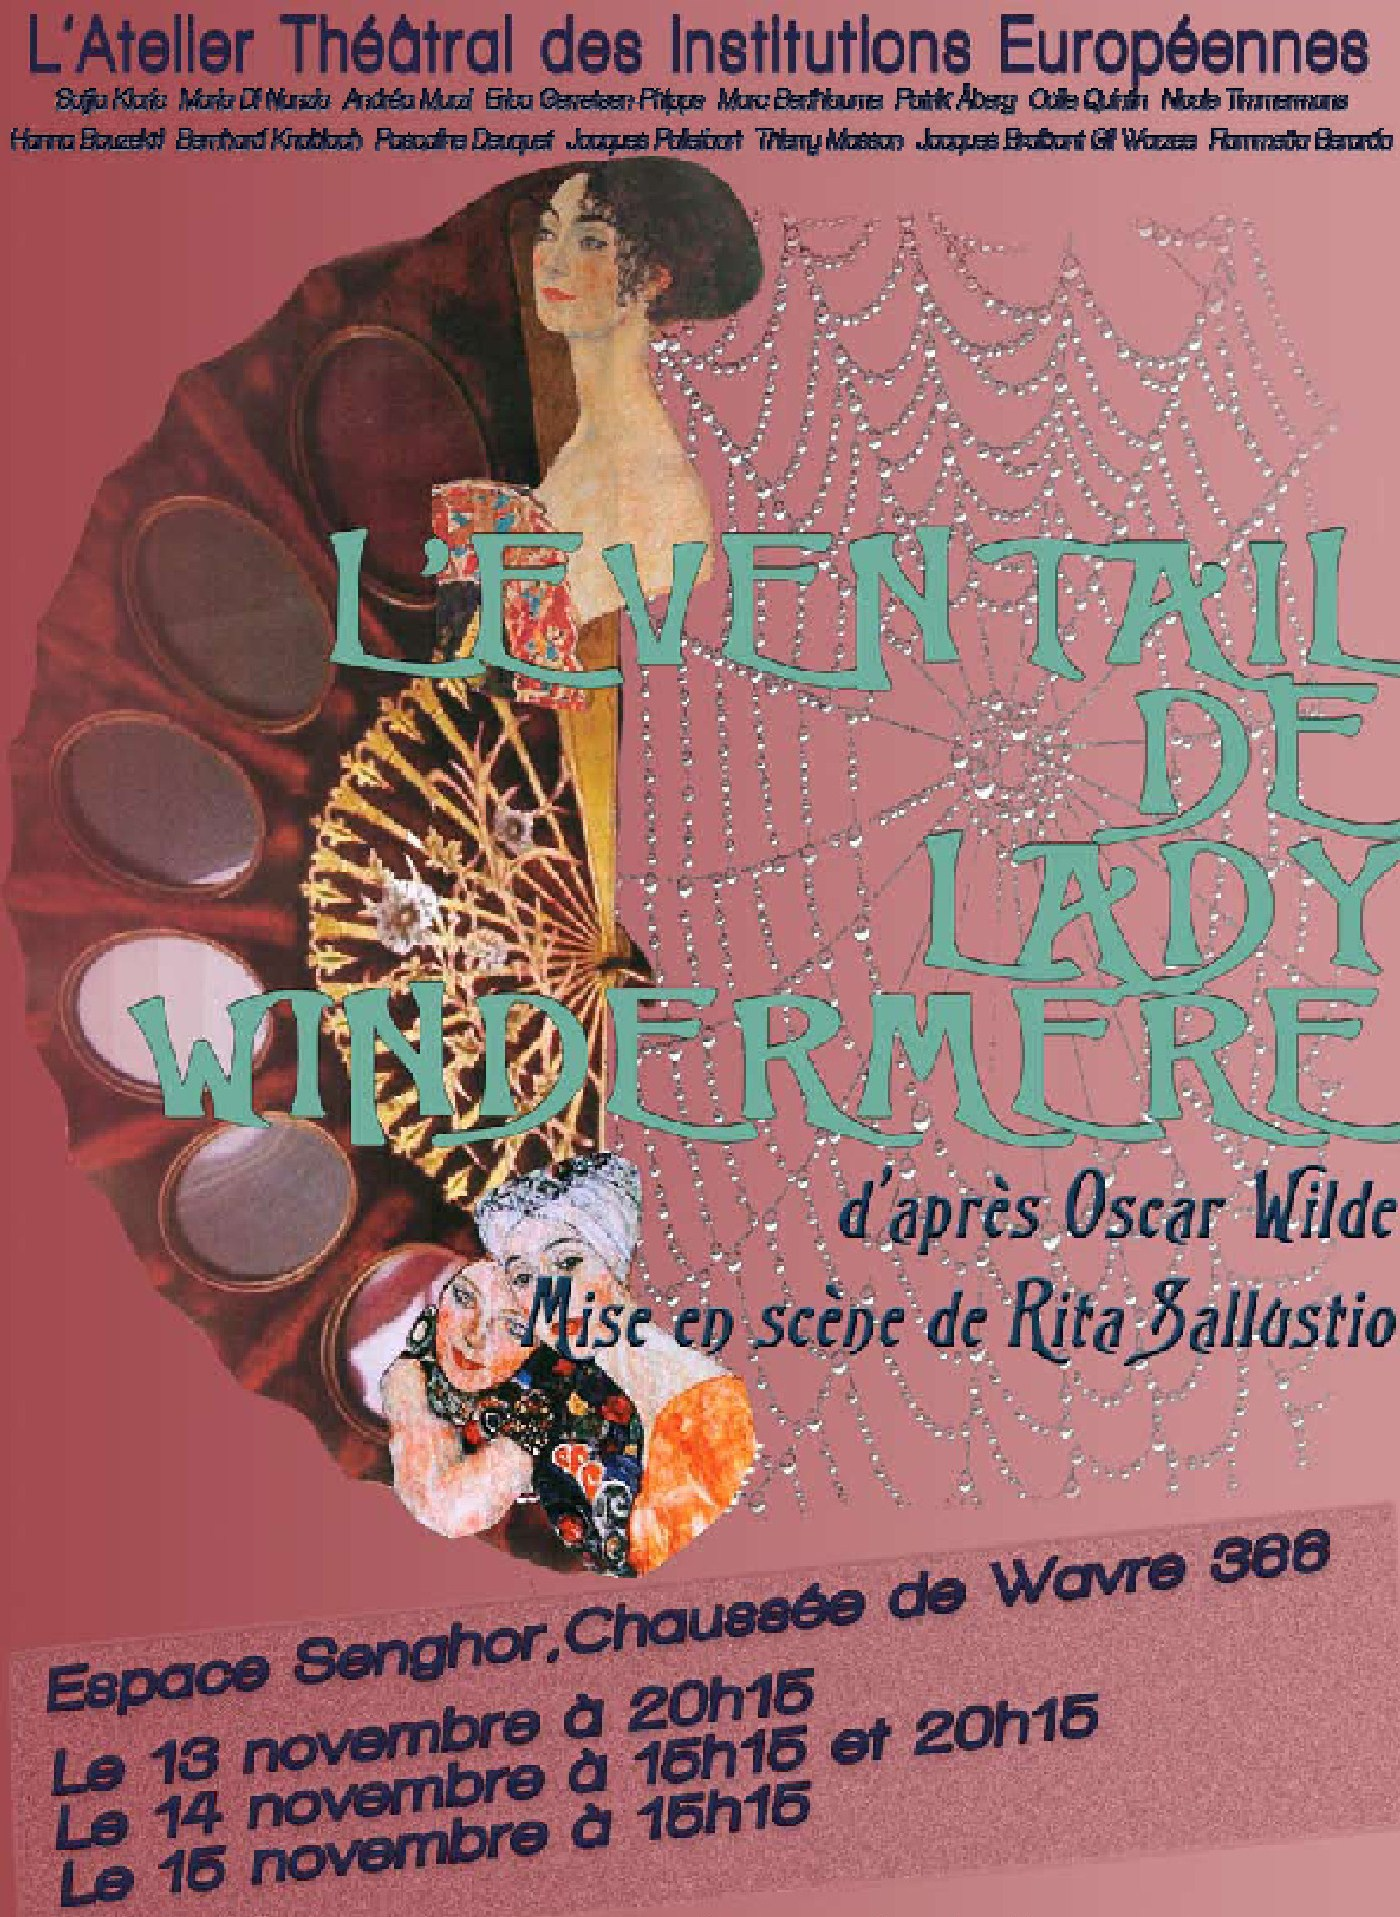 LEventail de Lady Windermere